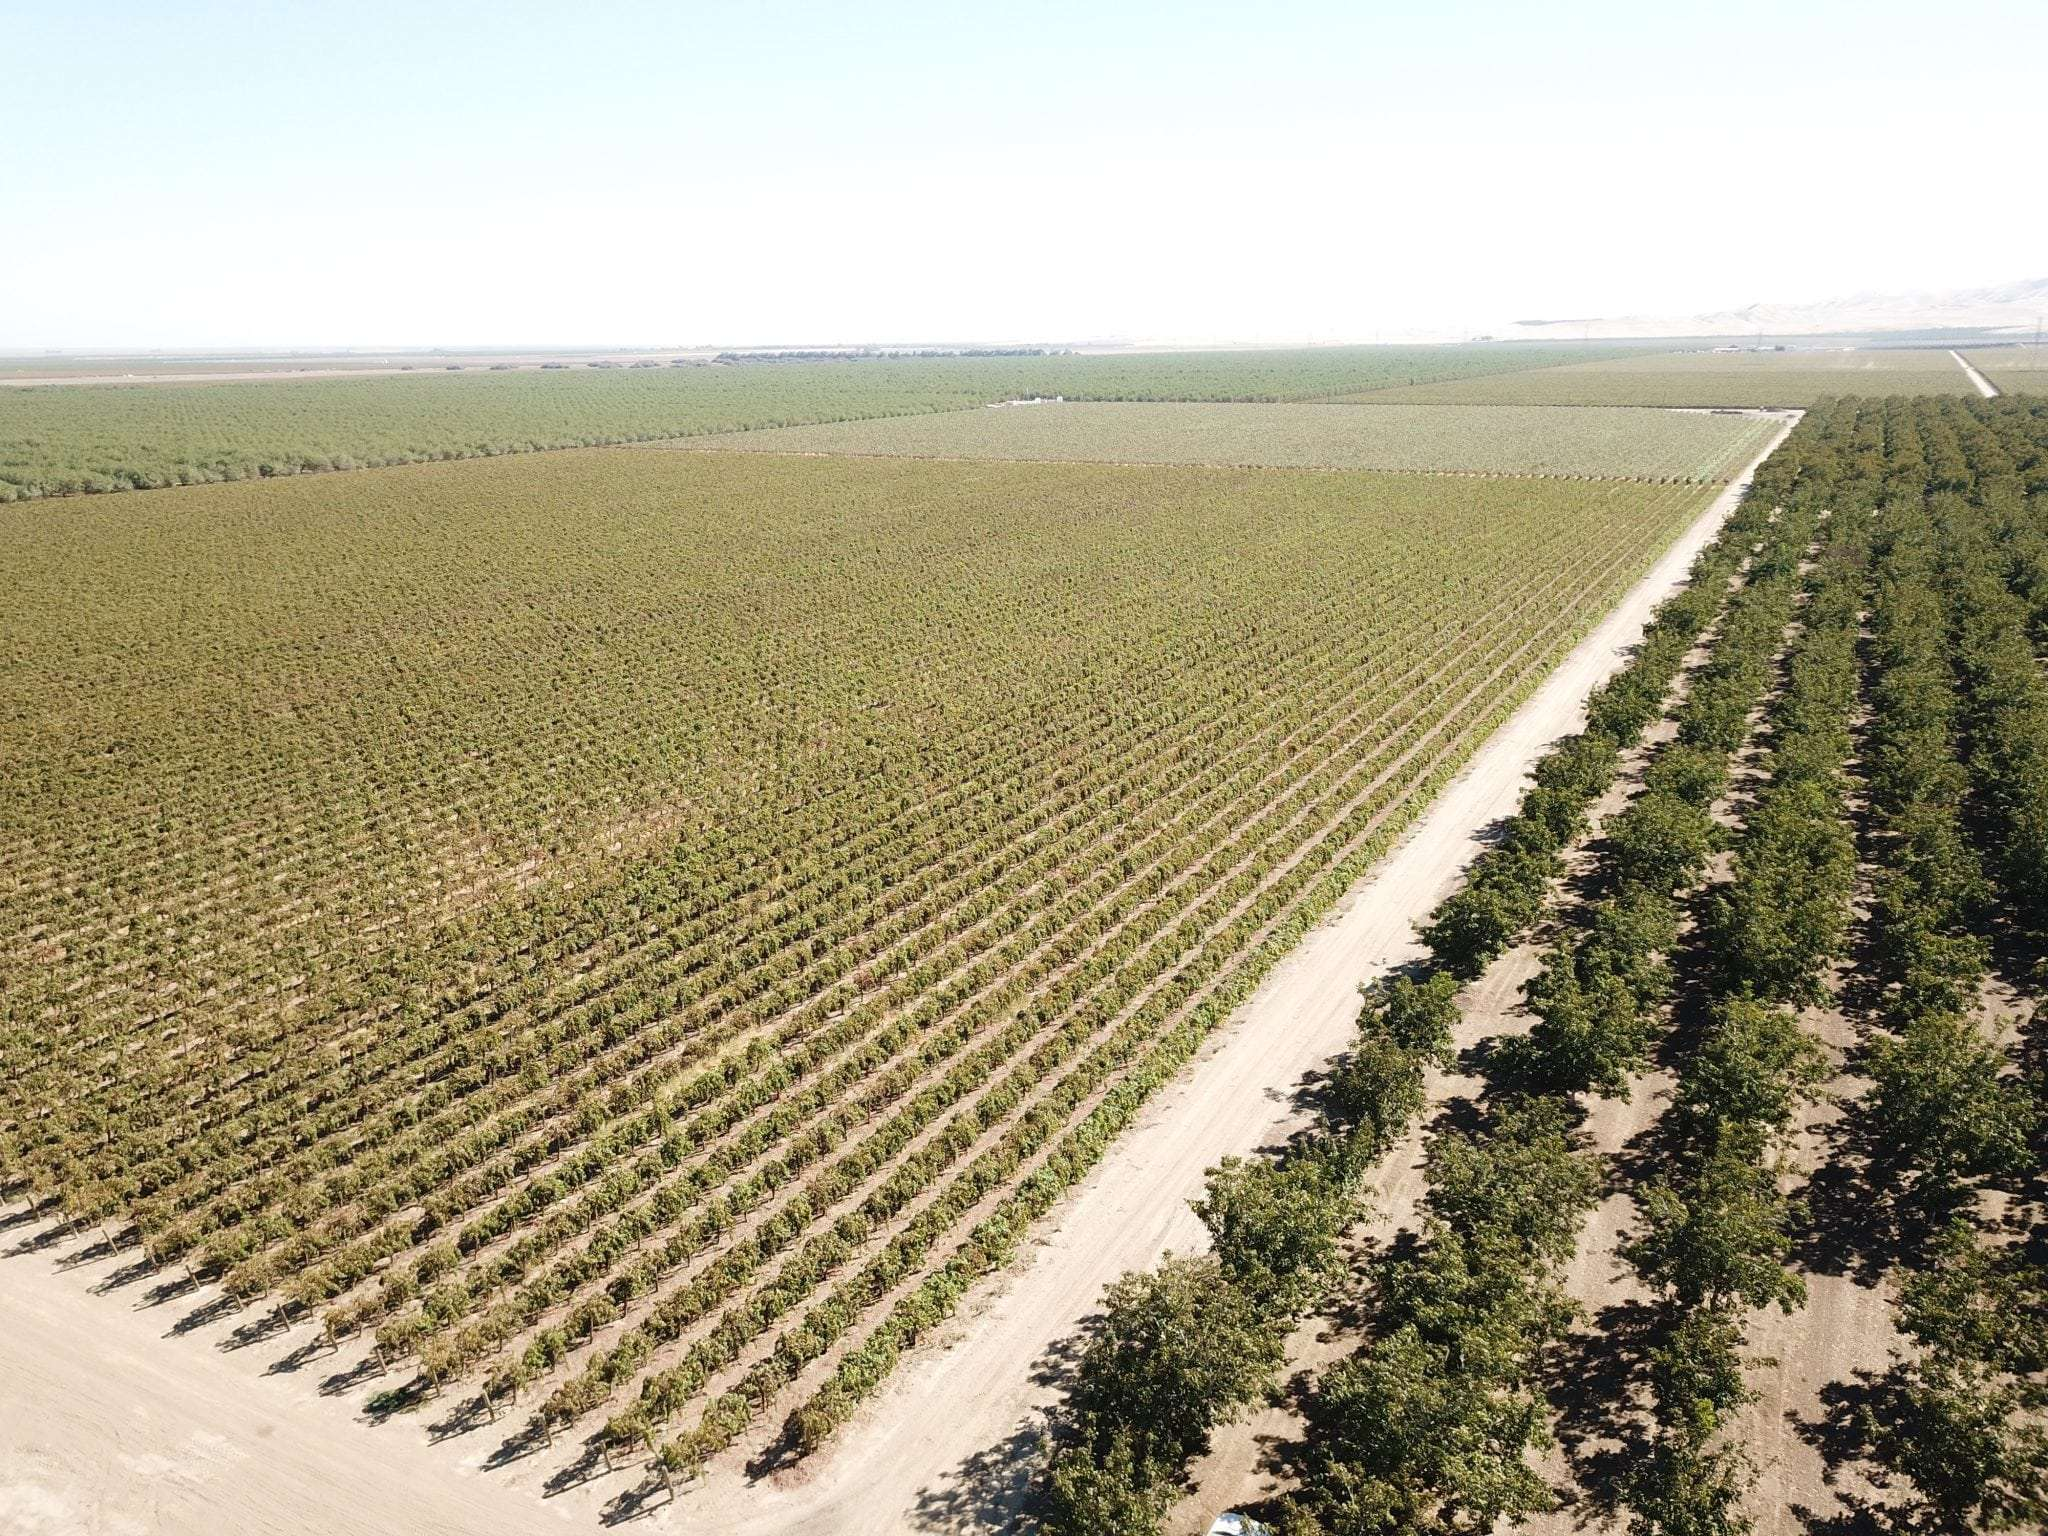 640.57 Ac. Open, Walnuts & Vines, Fresno County